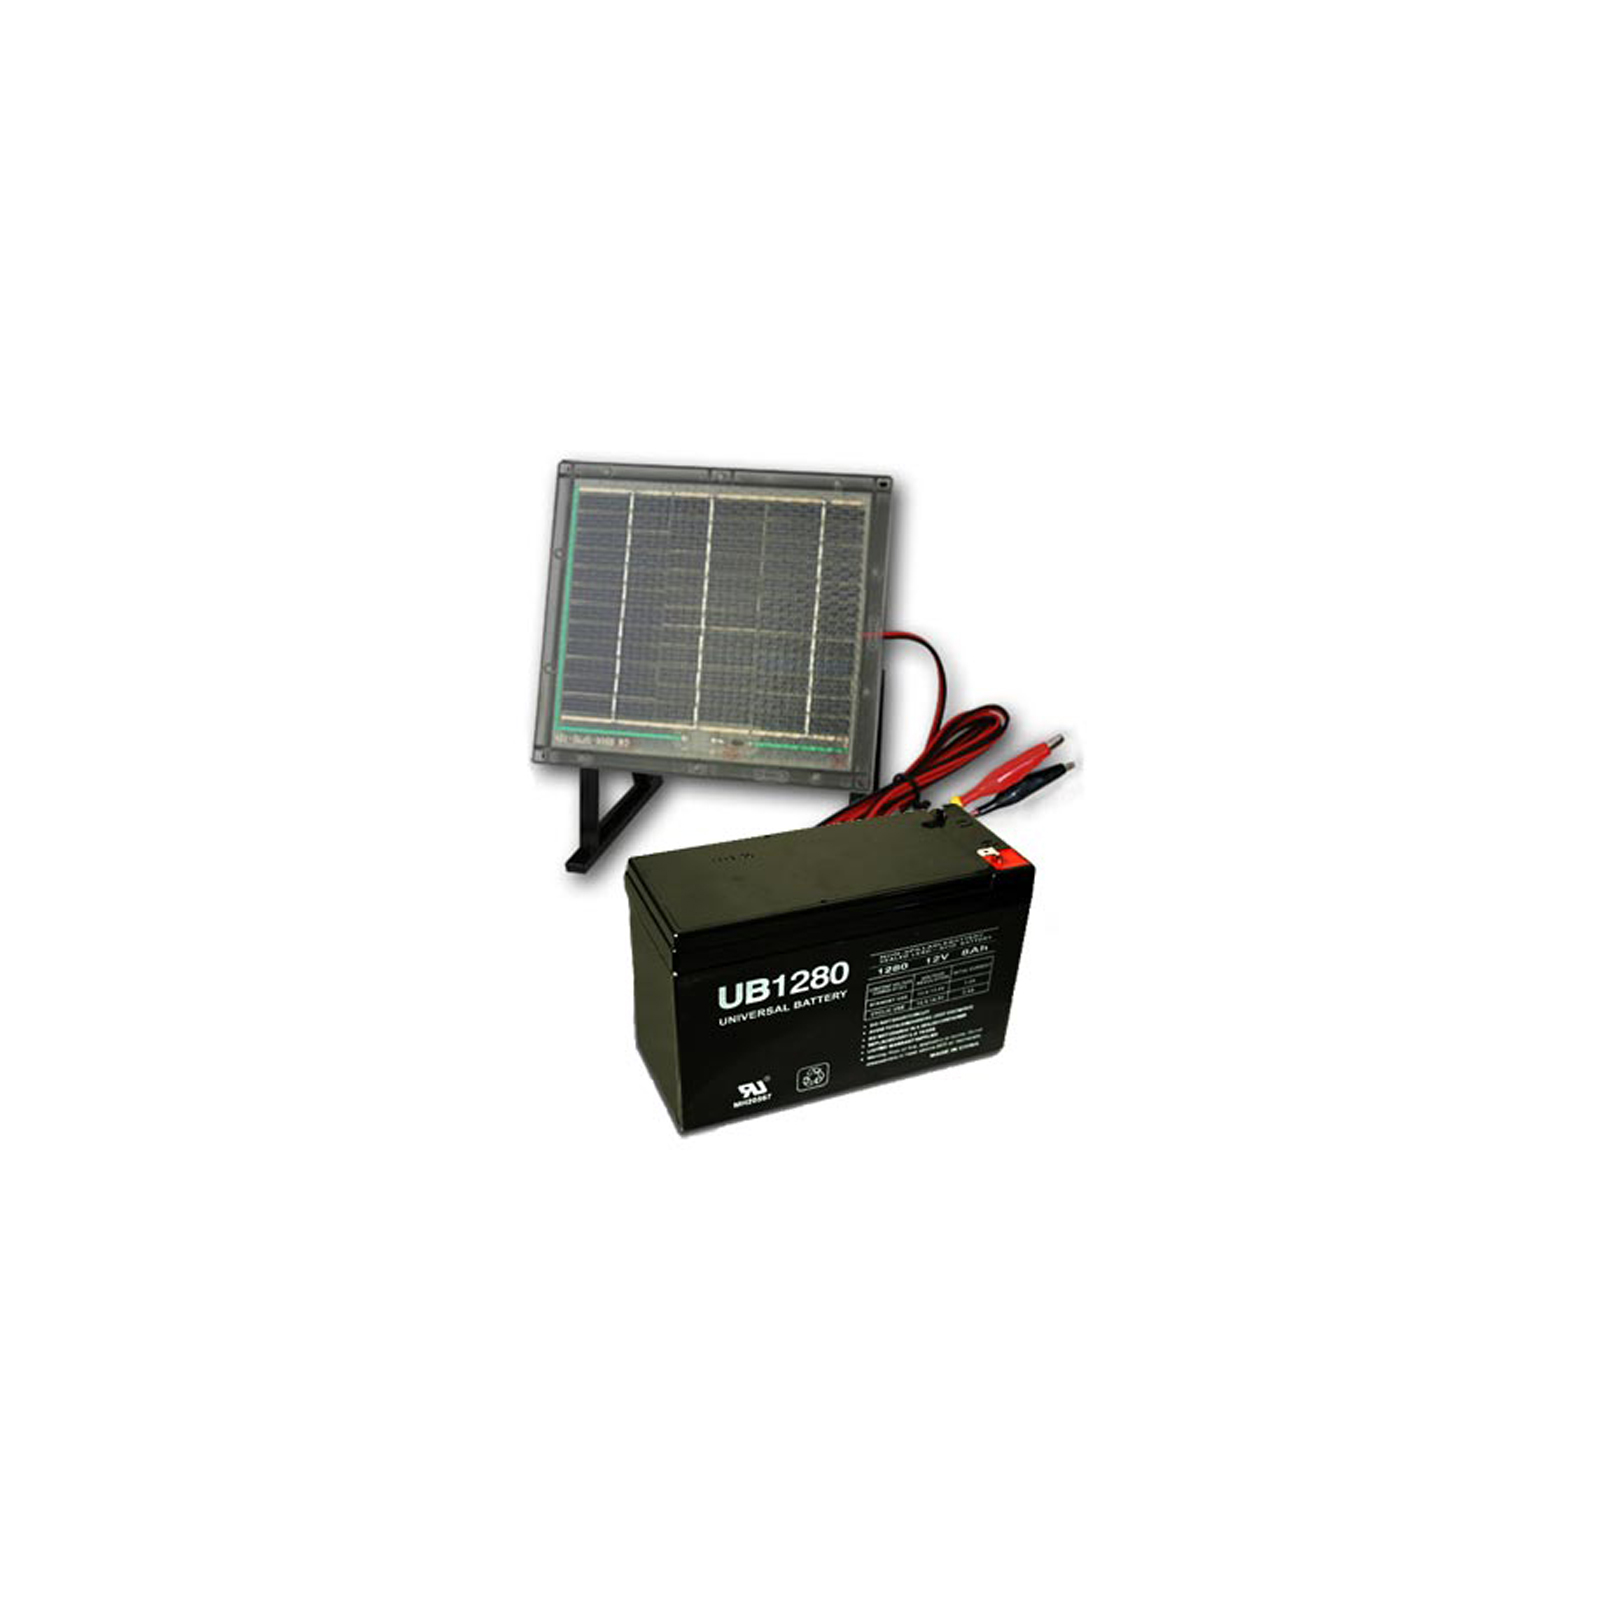 portable solar panel 12v 8ah sla ub1280 battery combo. Black Bedroom Furniture Sets. Home Design Ideas